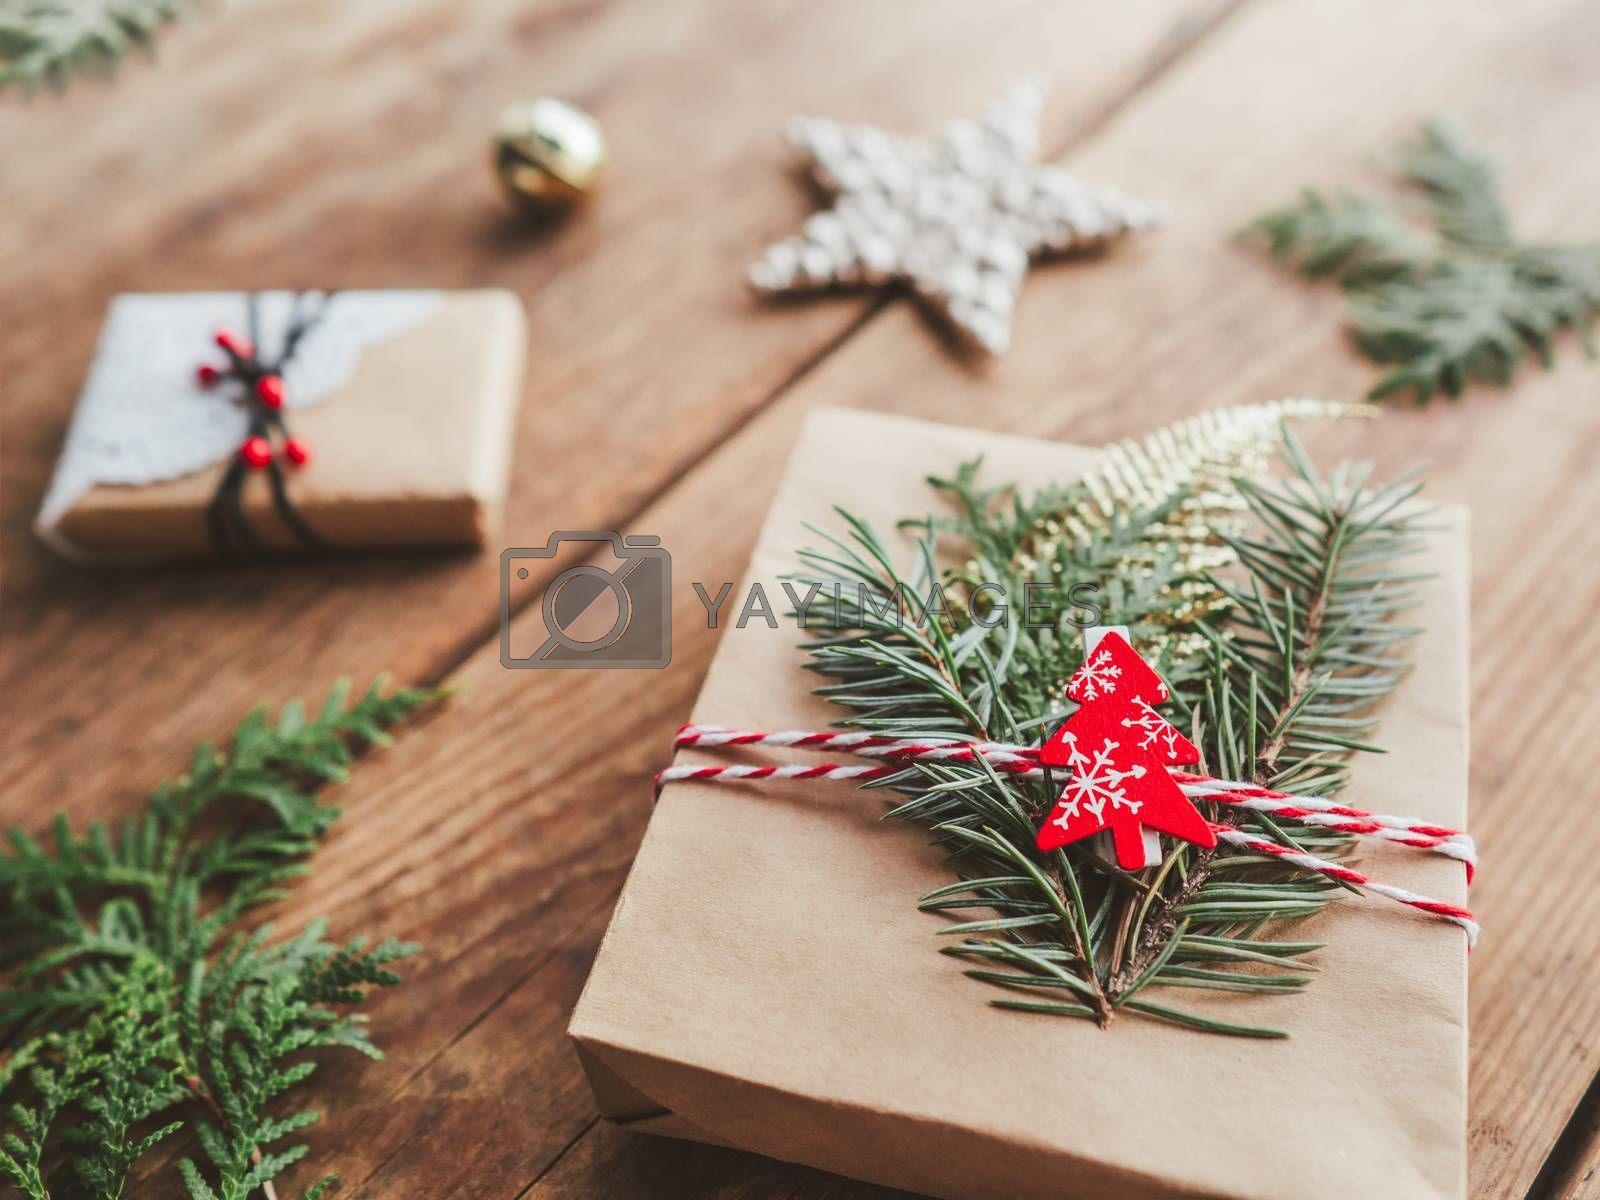 Christmas DIY presents wrapped in craft paper with fir tree twigs. Red decorations in shape of Christmas tree, stars. New Year gifts on wooden background. Winter holiday spirit.